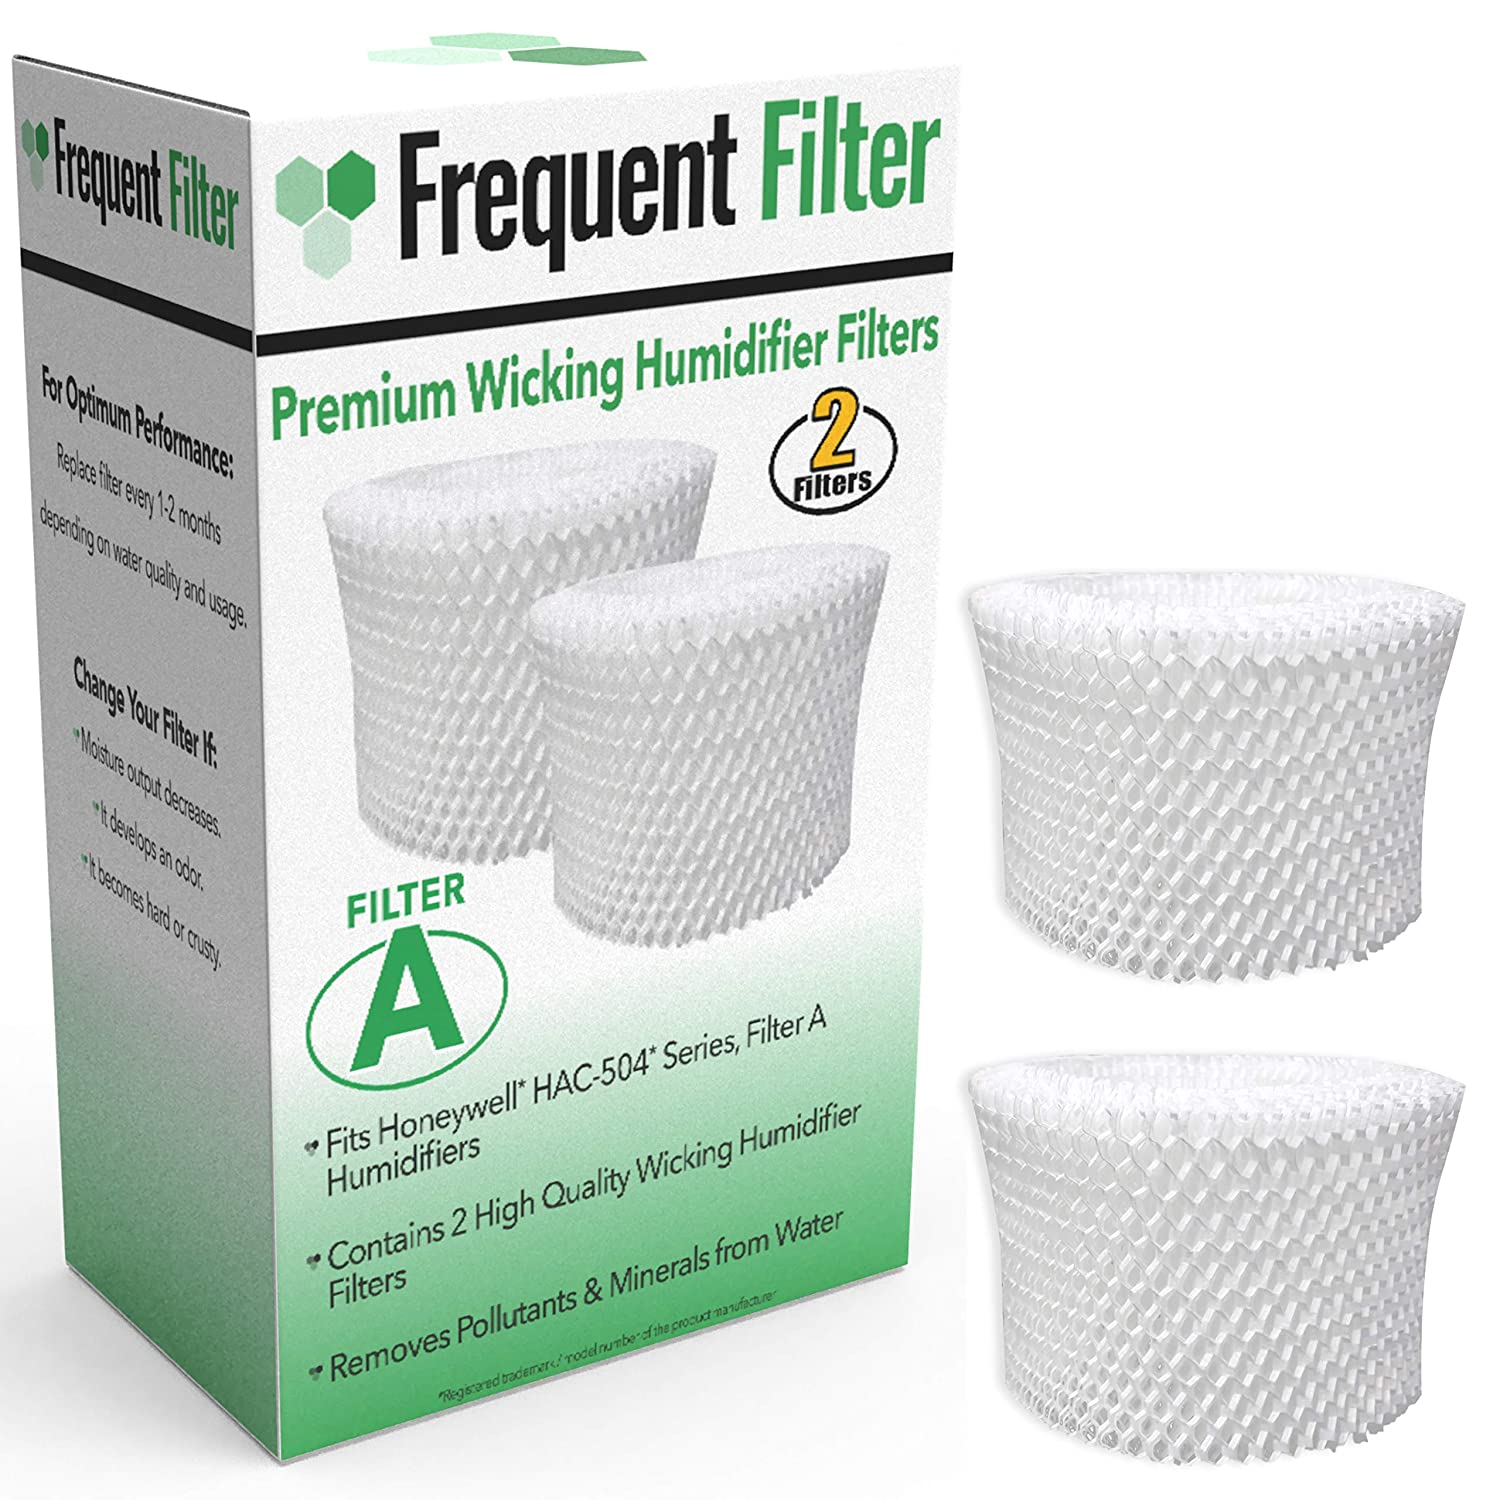 Frequent Filter - Compatible Honeywell Germ Free Cool Mist Wicking Humidifier, Filter A. Fits HCM 350, HCM350w, HCM350, Quietcare More. Replacement HAC 504, HAC504, 504AW - (Pack of 2)